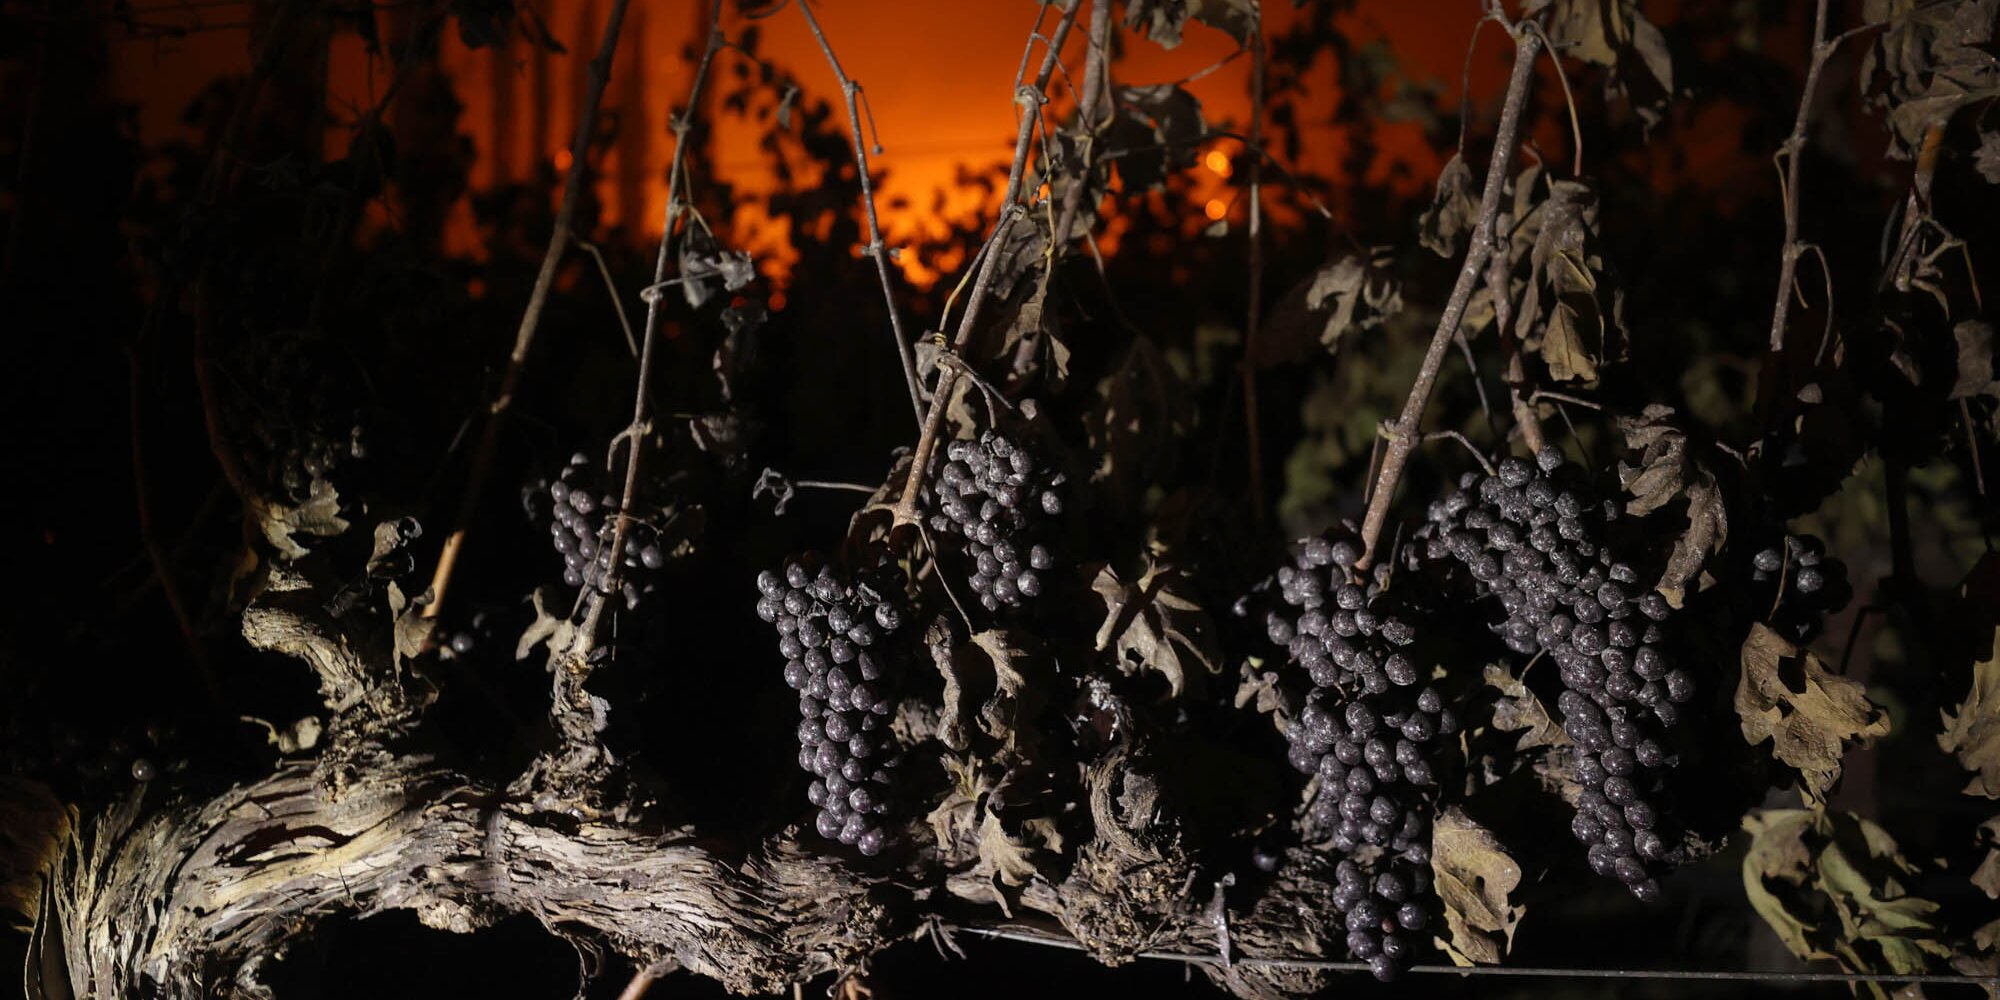 Wildfires Destroy Homes and Iconic Wineries in Northern California Wine Country